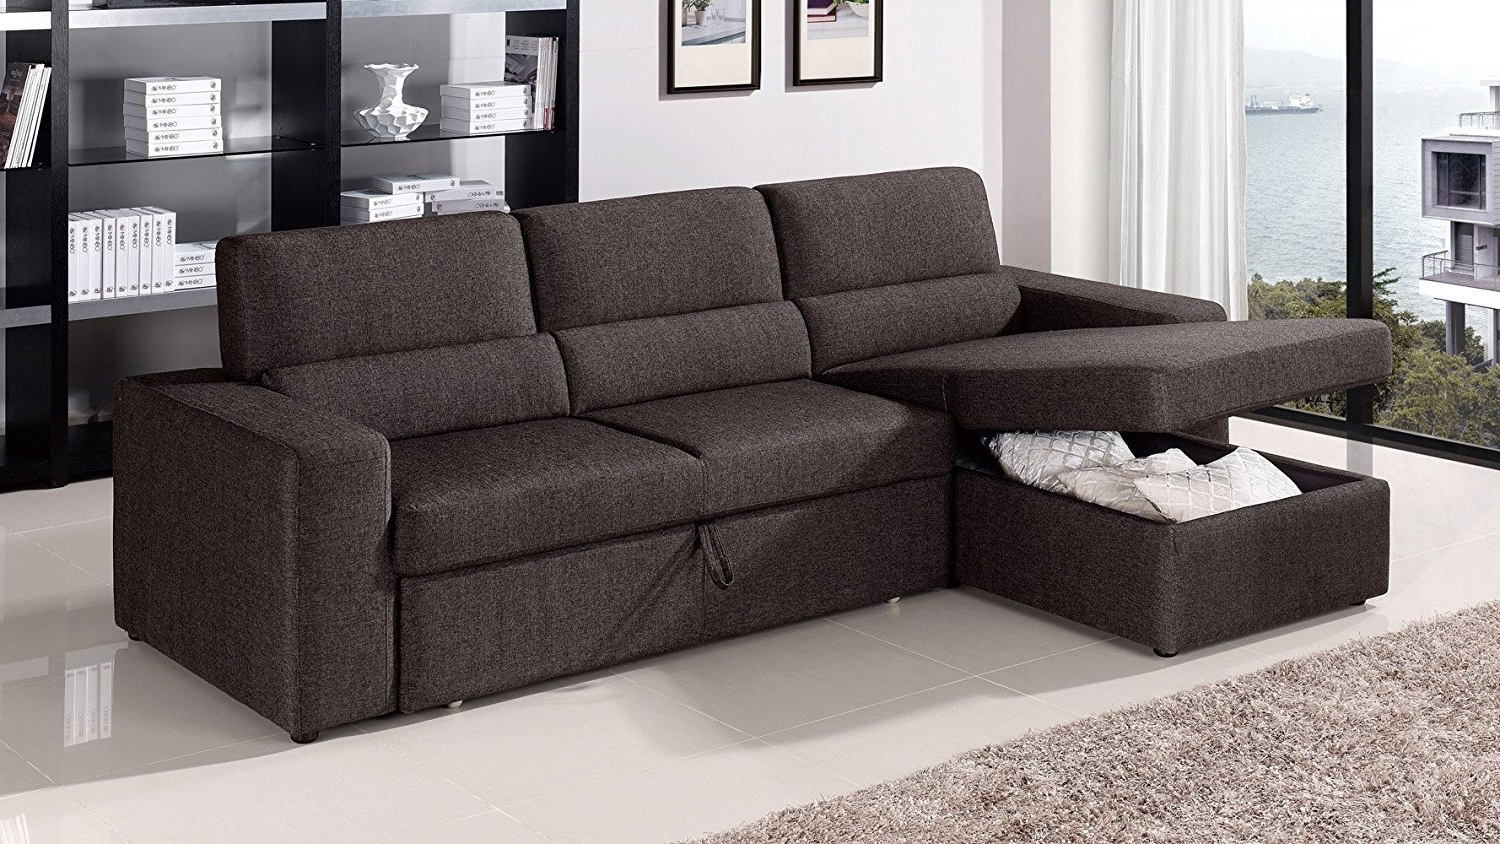 Most Recent Amazon: Black/brown Clubber Sleeper Sectional Sofa – Left Inside Chaise Sofa Sectionals (View 9 of 15)